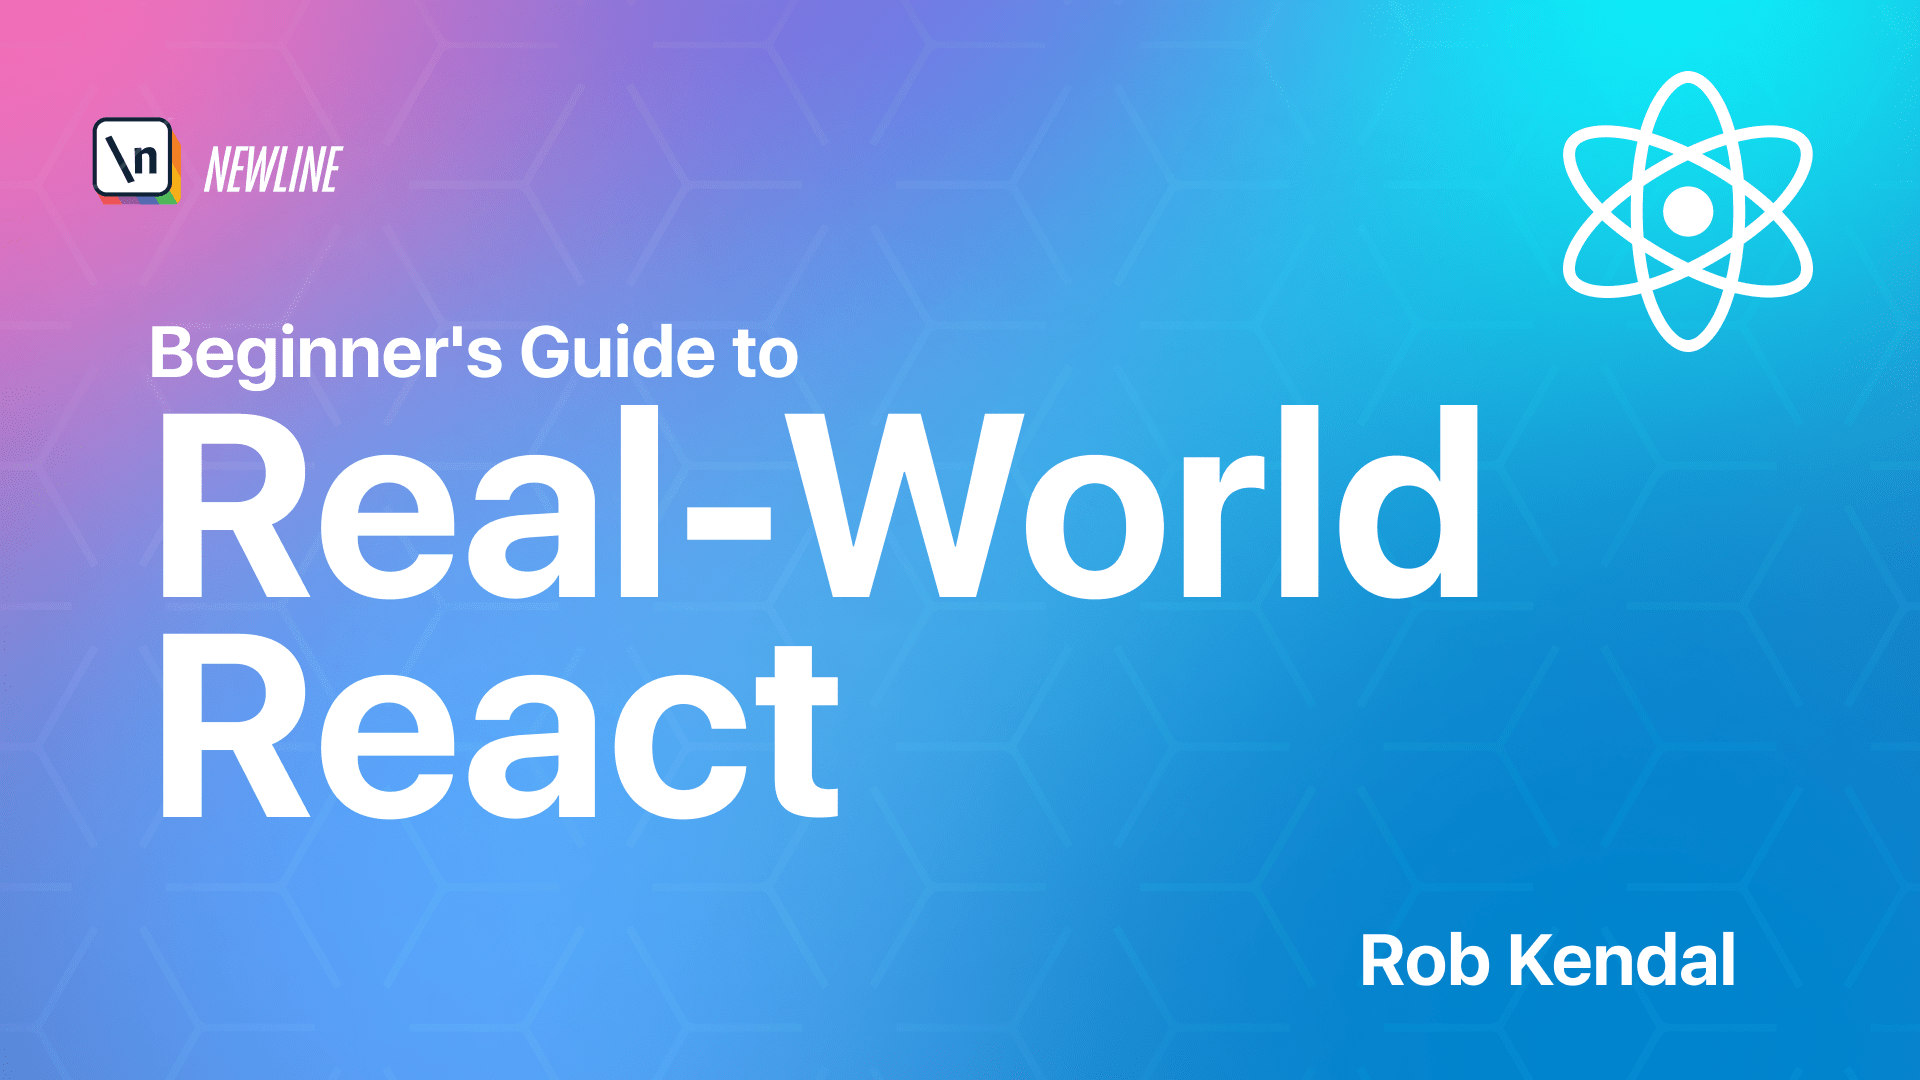 The Beginners Guide to Real-World React course cover